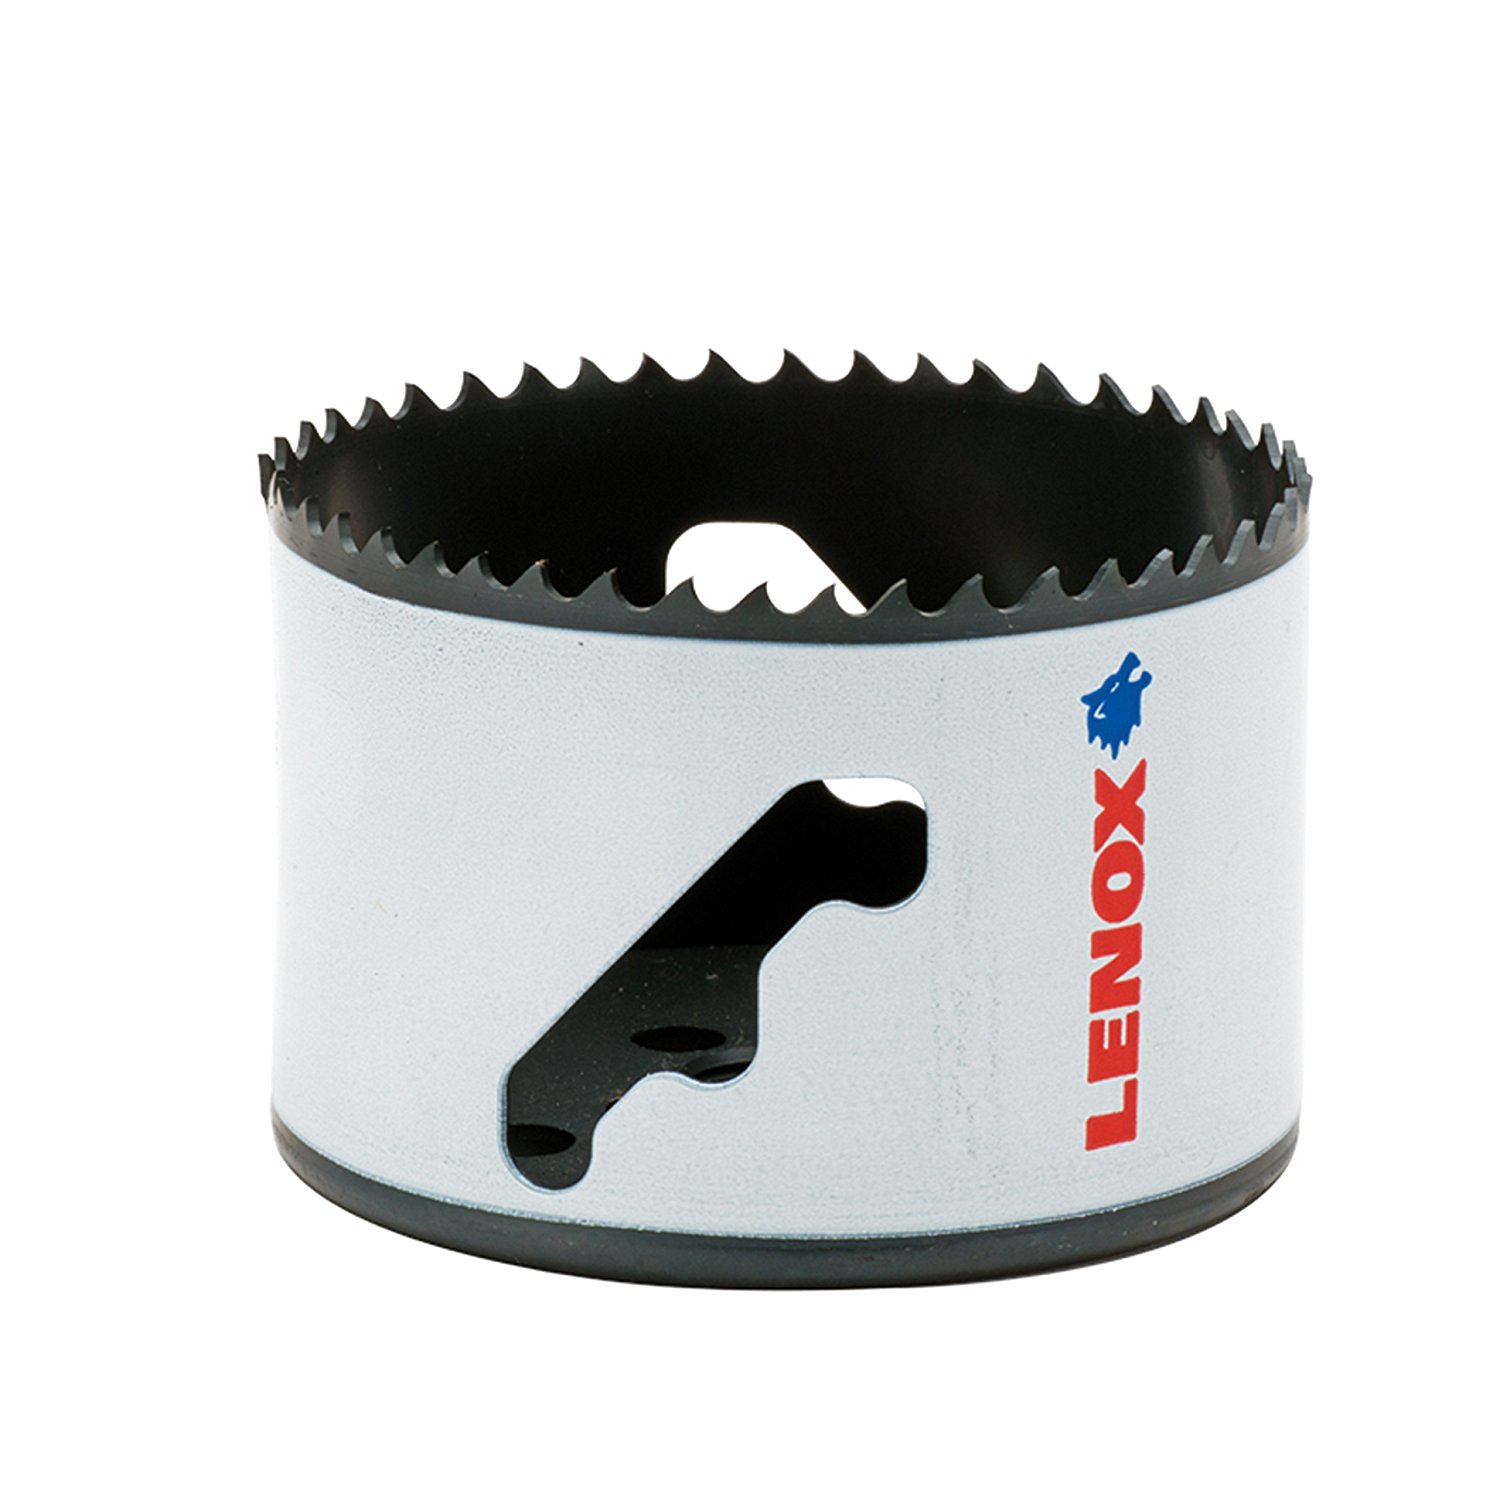 LENOX Tools Bi-Metal Speed Slot Hole Saw with T3 Technology, 3